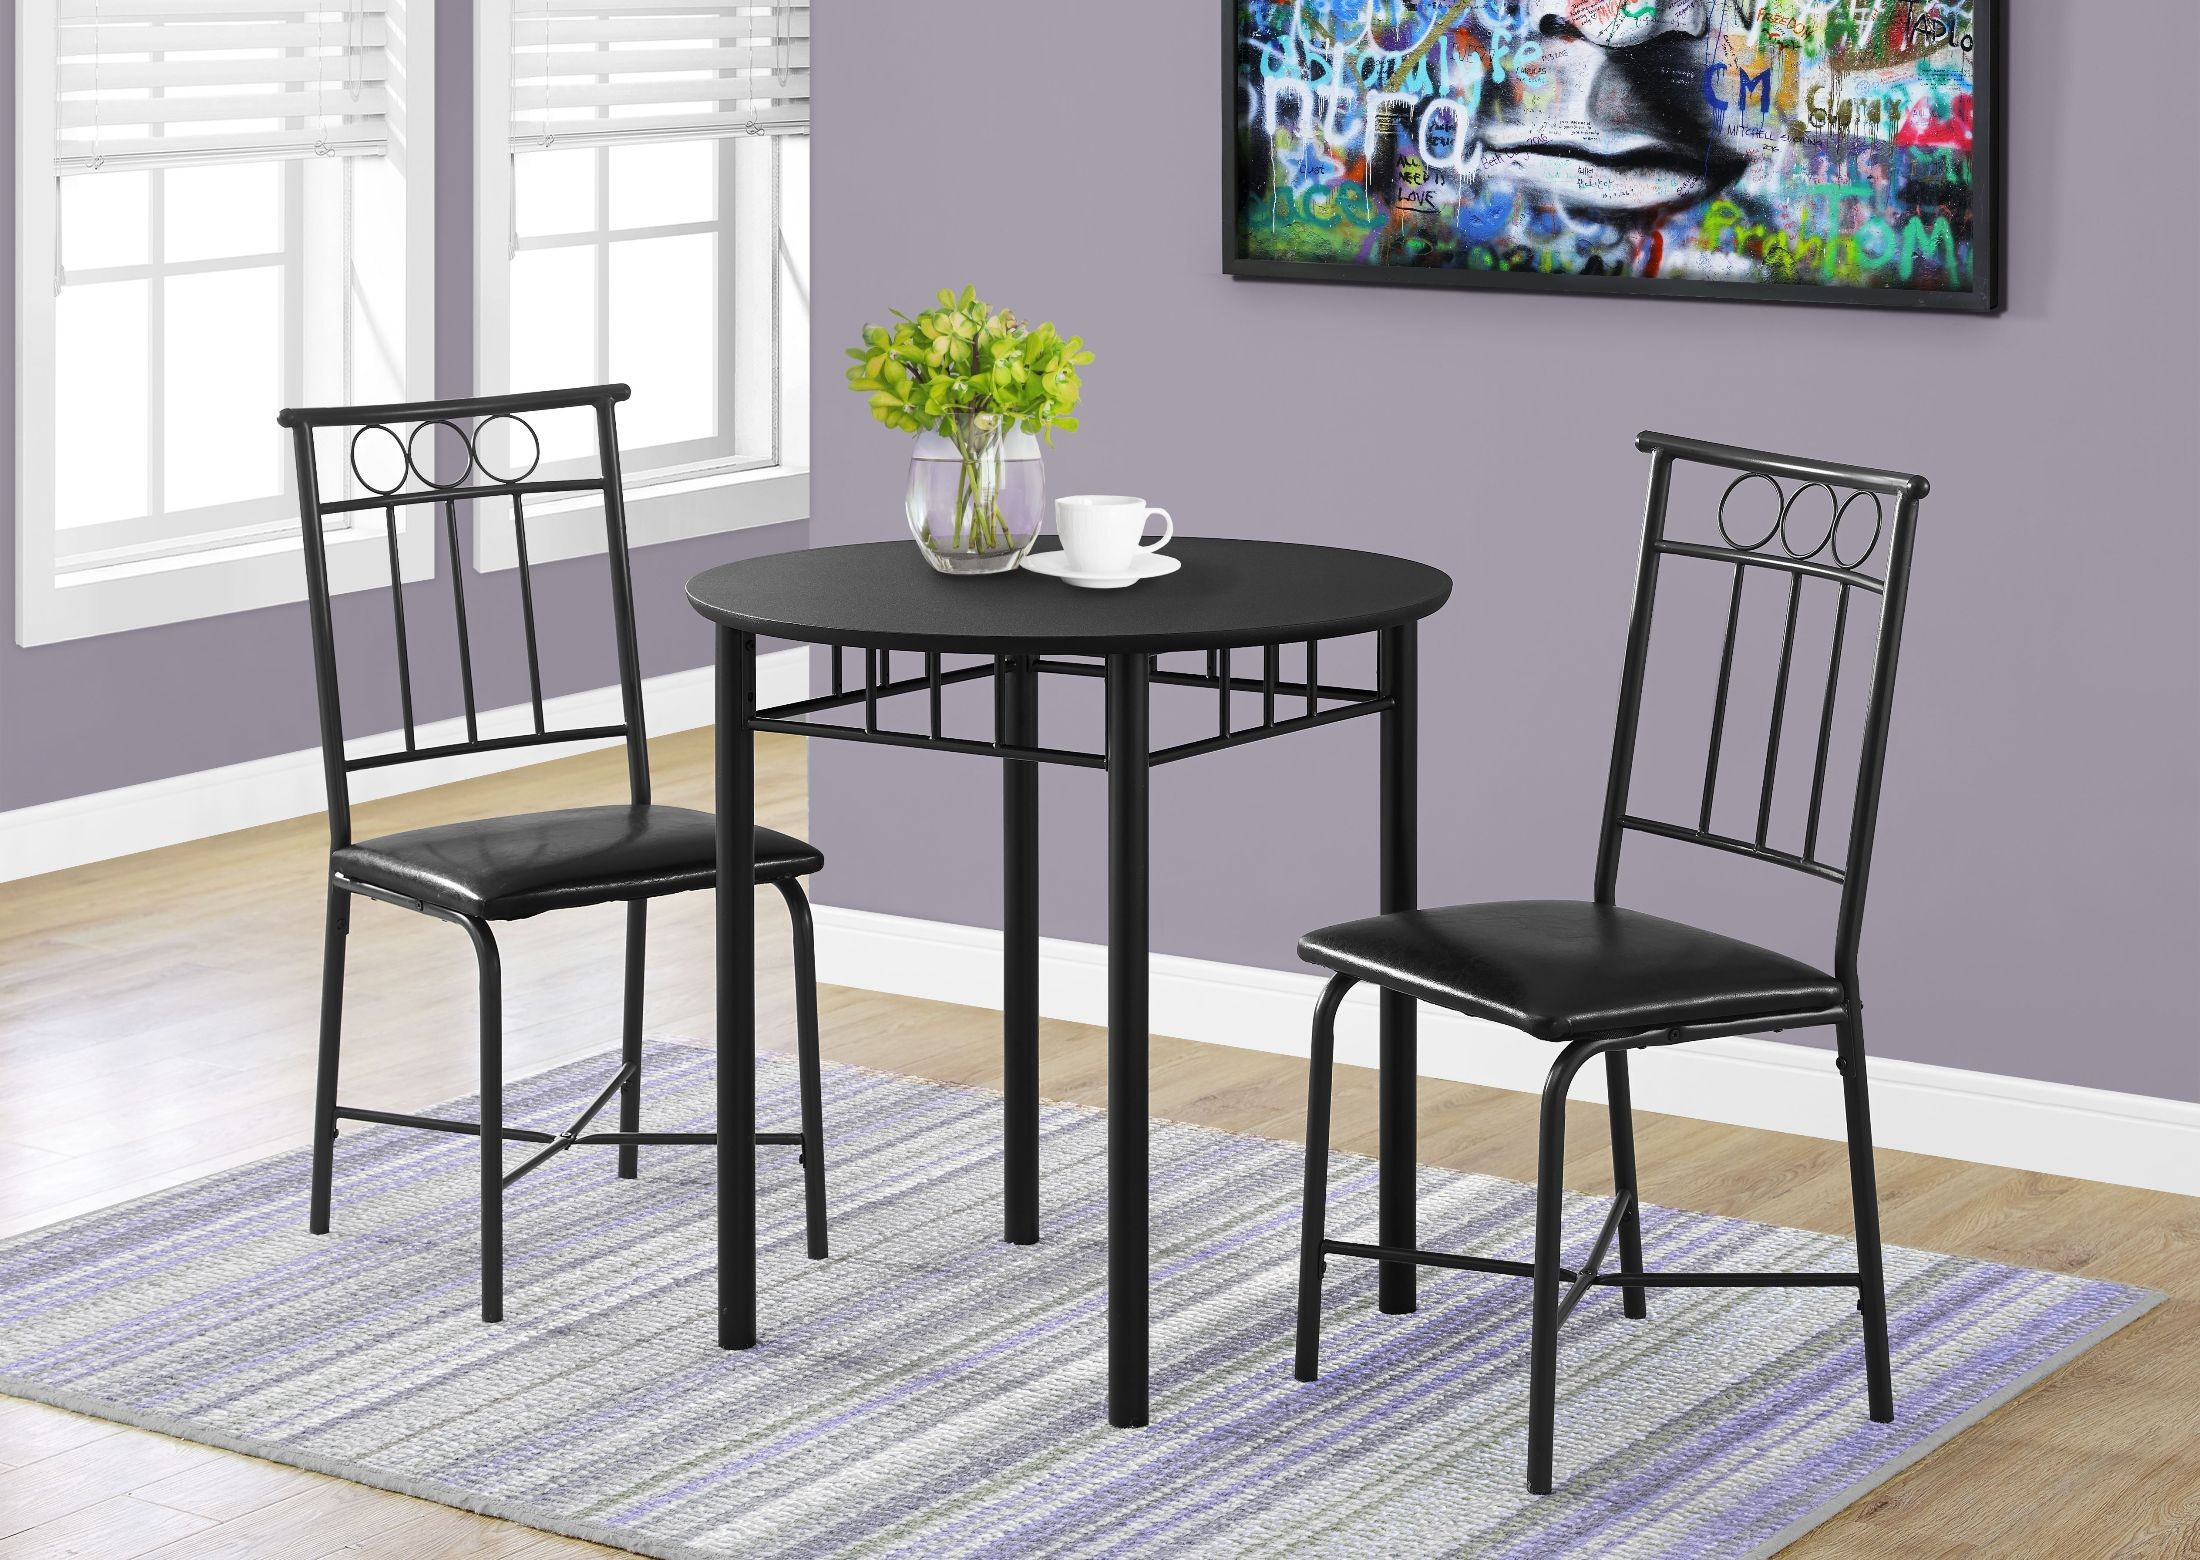 black metal 3 piece dining room set 1013 monarch